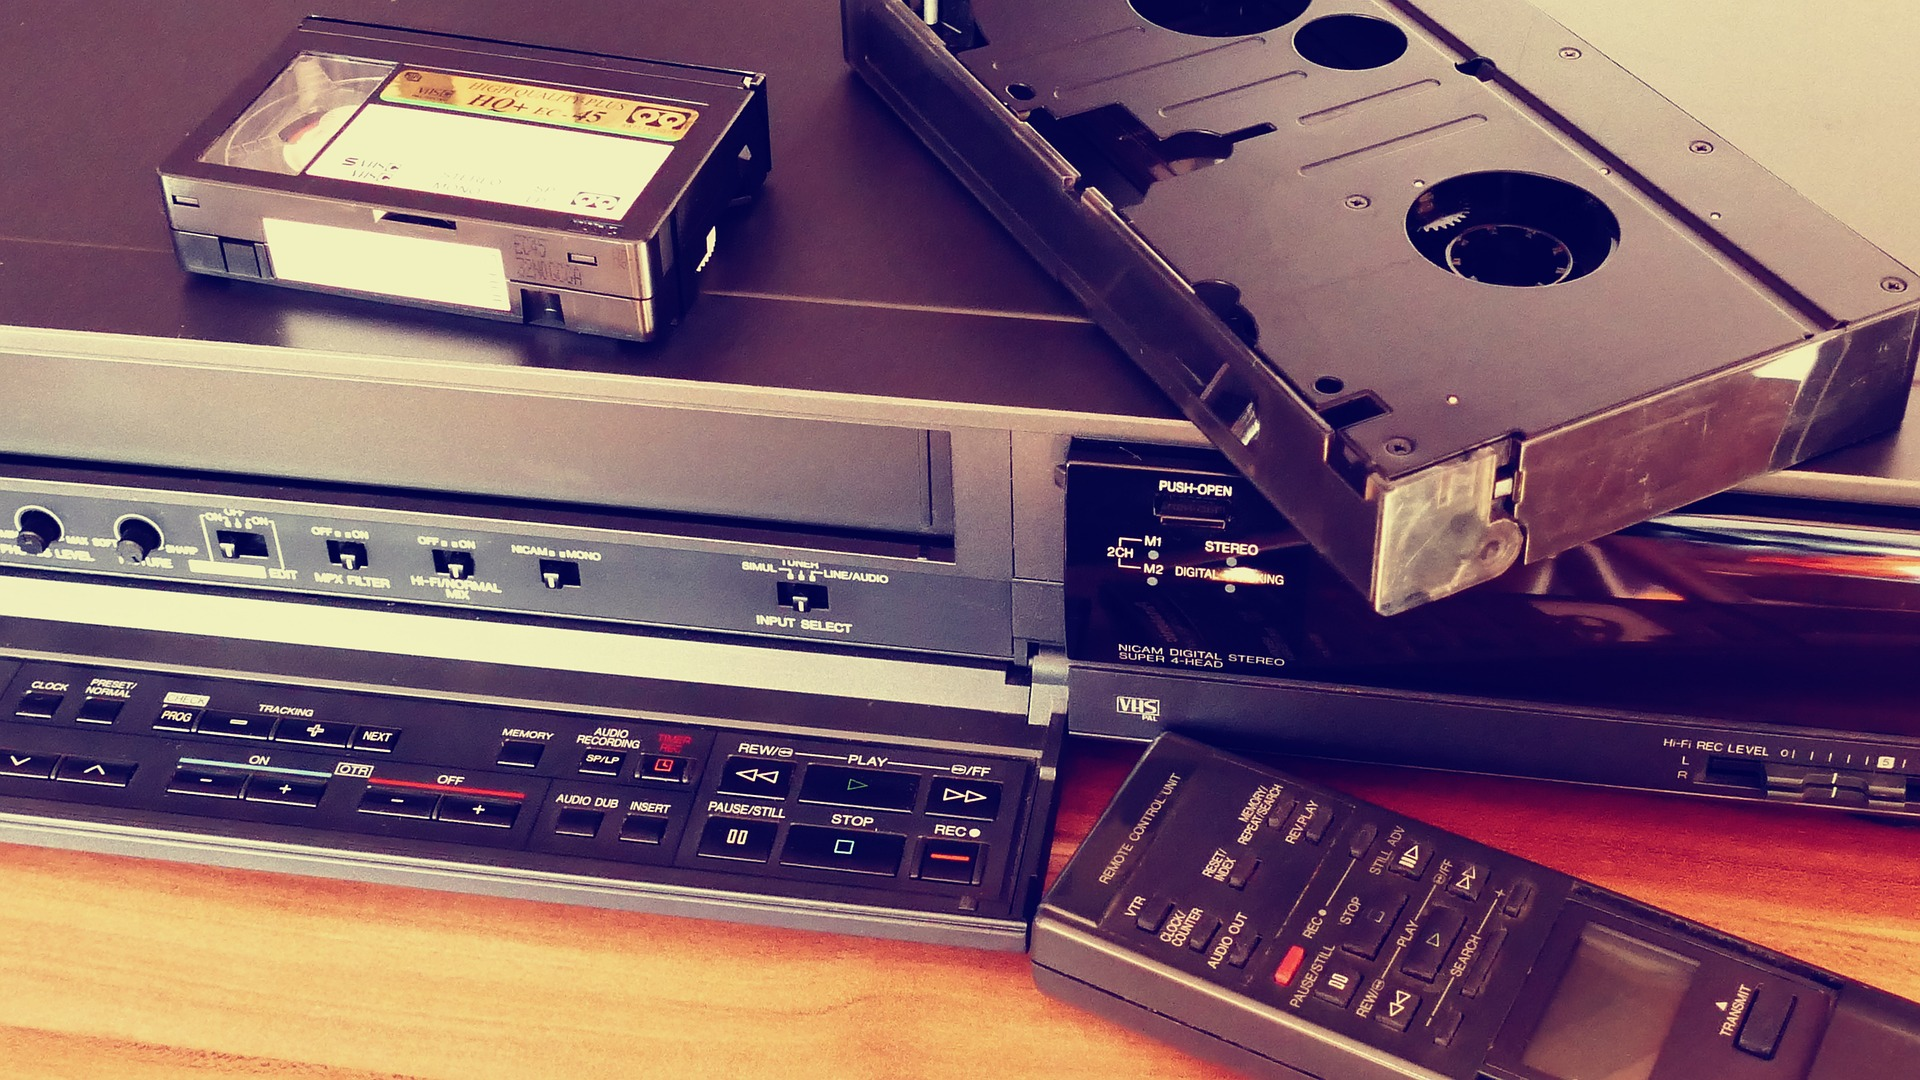 Pause. Play. Rewind – Watching the video tapes of the past.